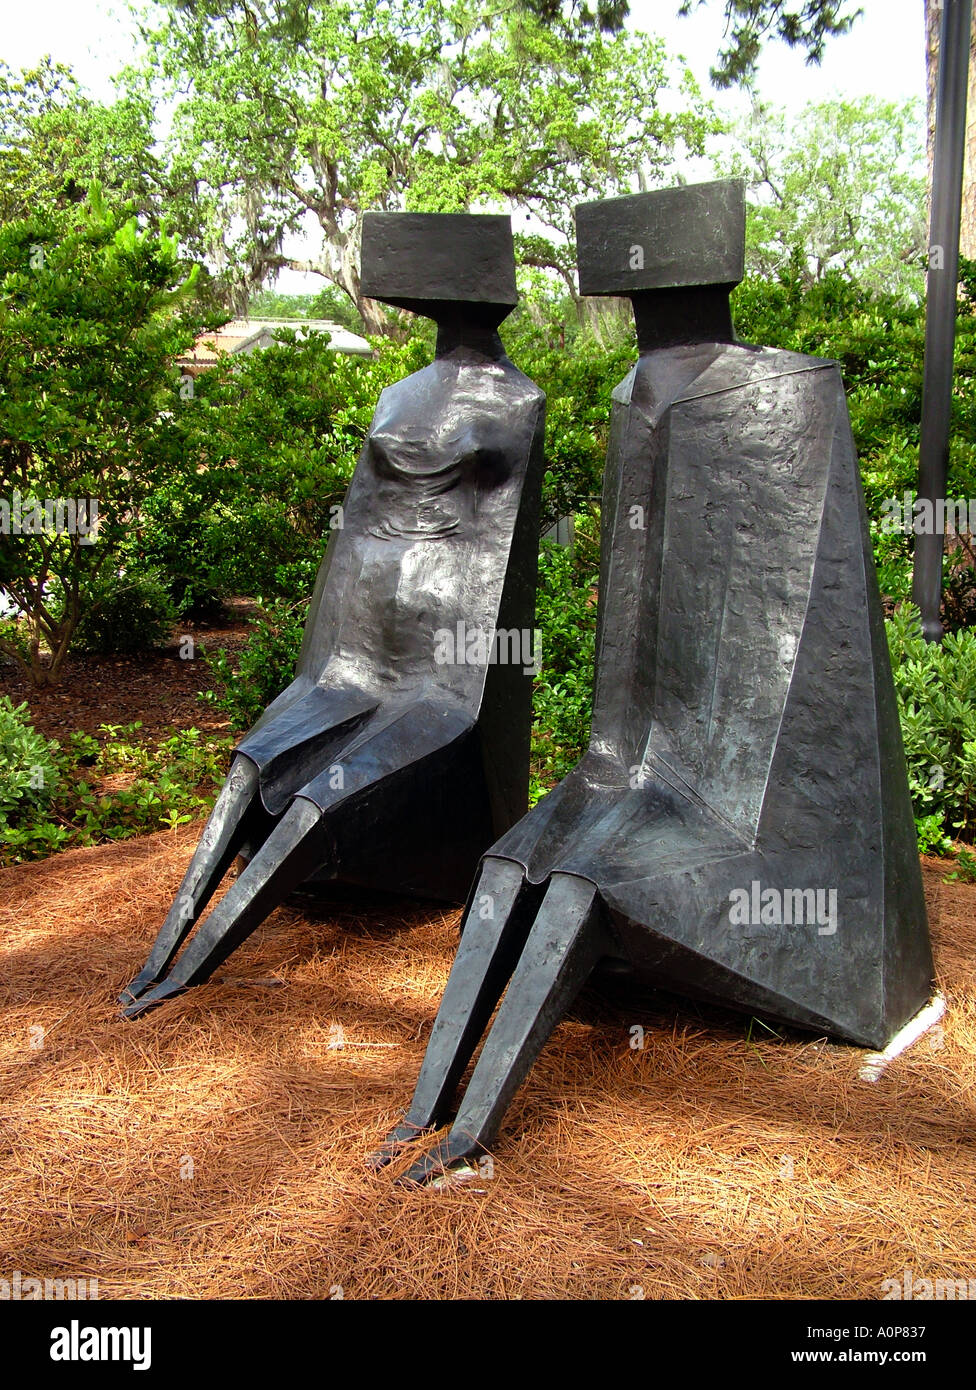 Lynn Chadwick Two sitting figures Sydney and Waldha Besthoff Sculpture garden at the New Orleans Museum of Art Louisiana USA - Stock Image